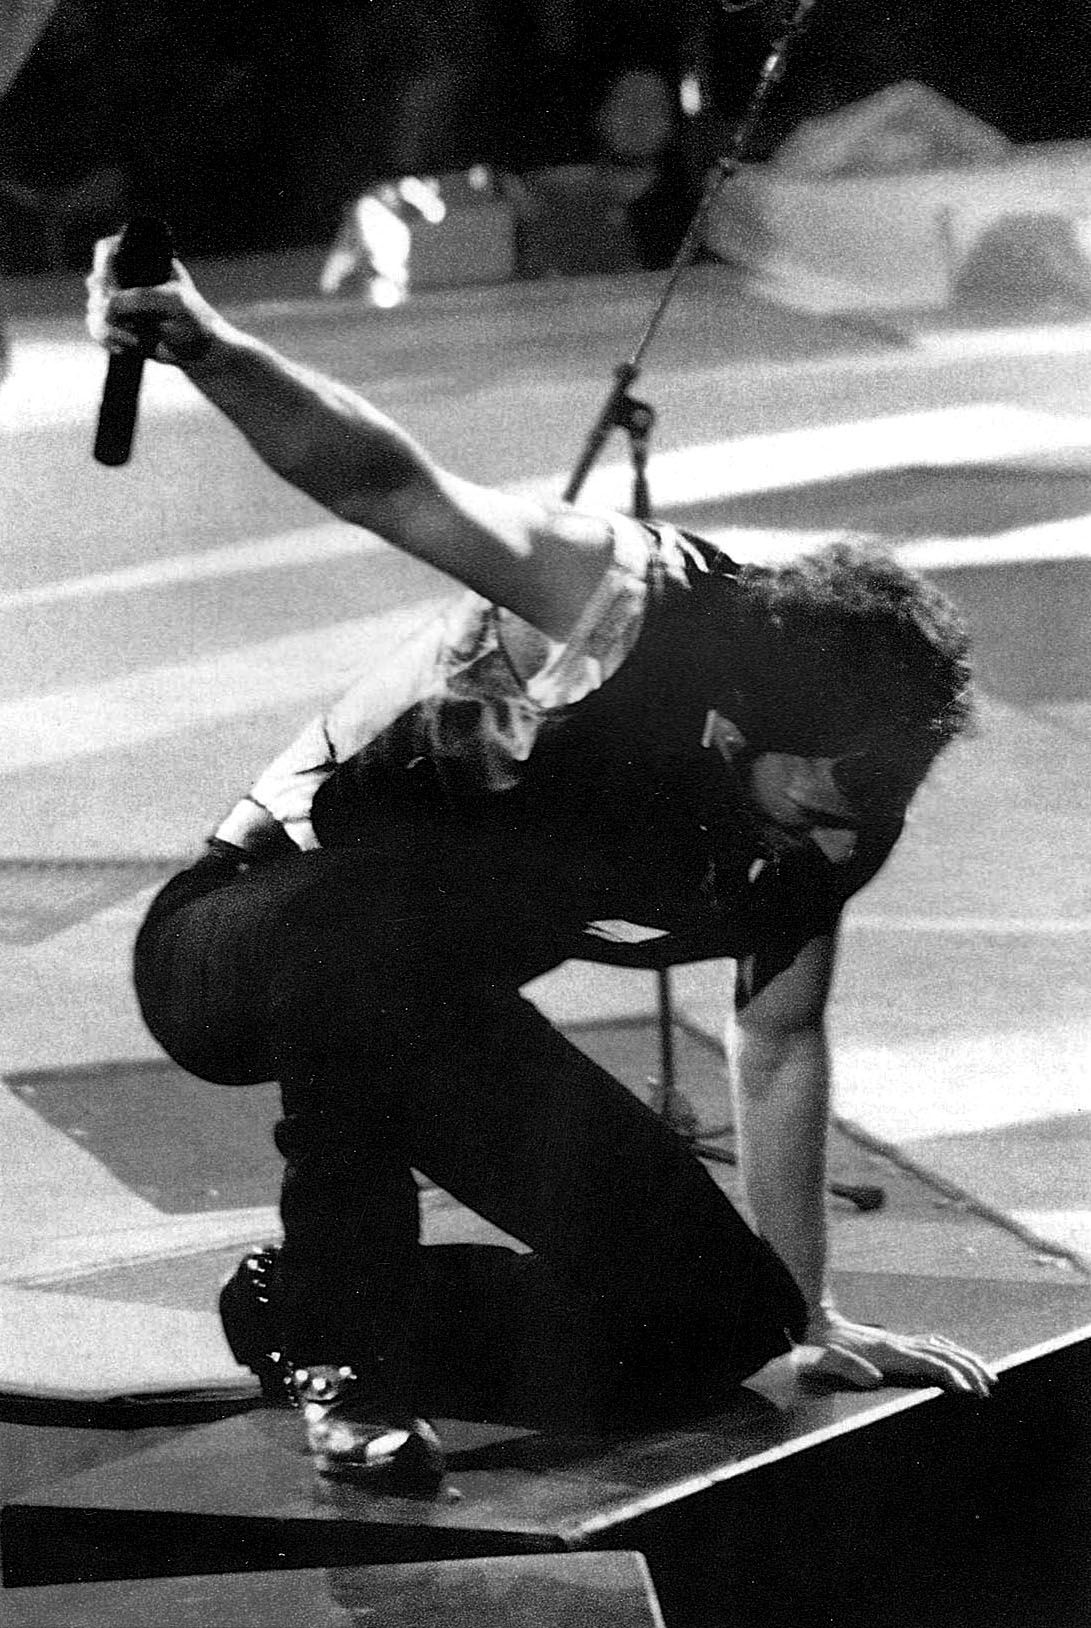 Bruce pourin' it all out on stage... Bruce springsteen